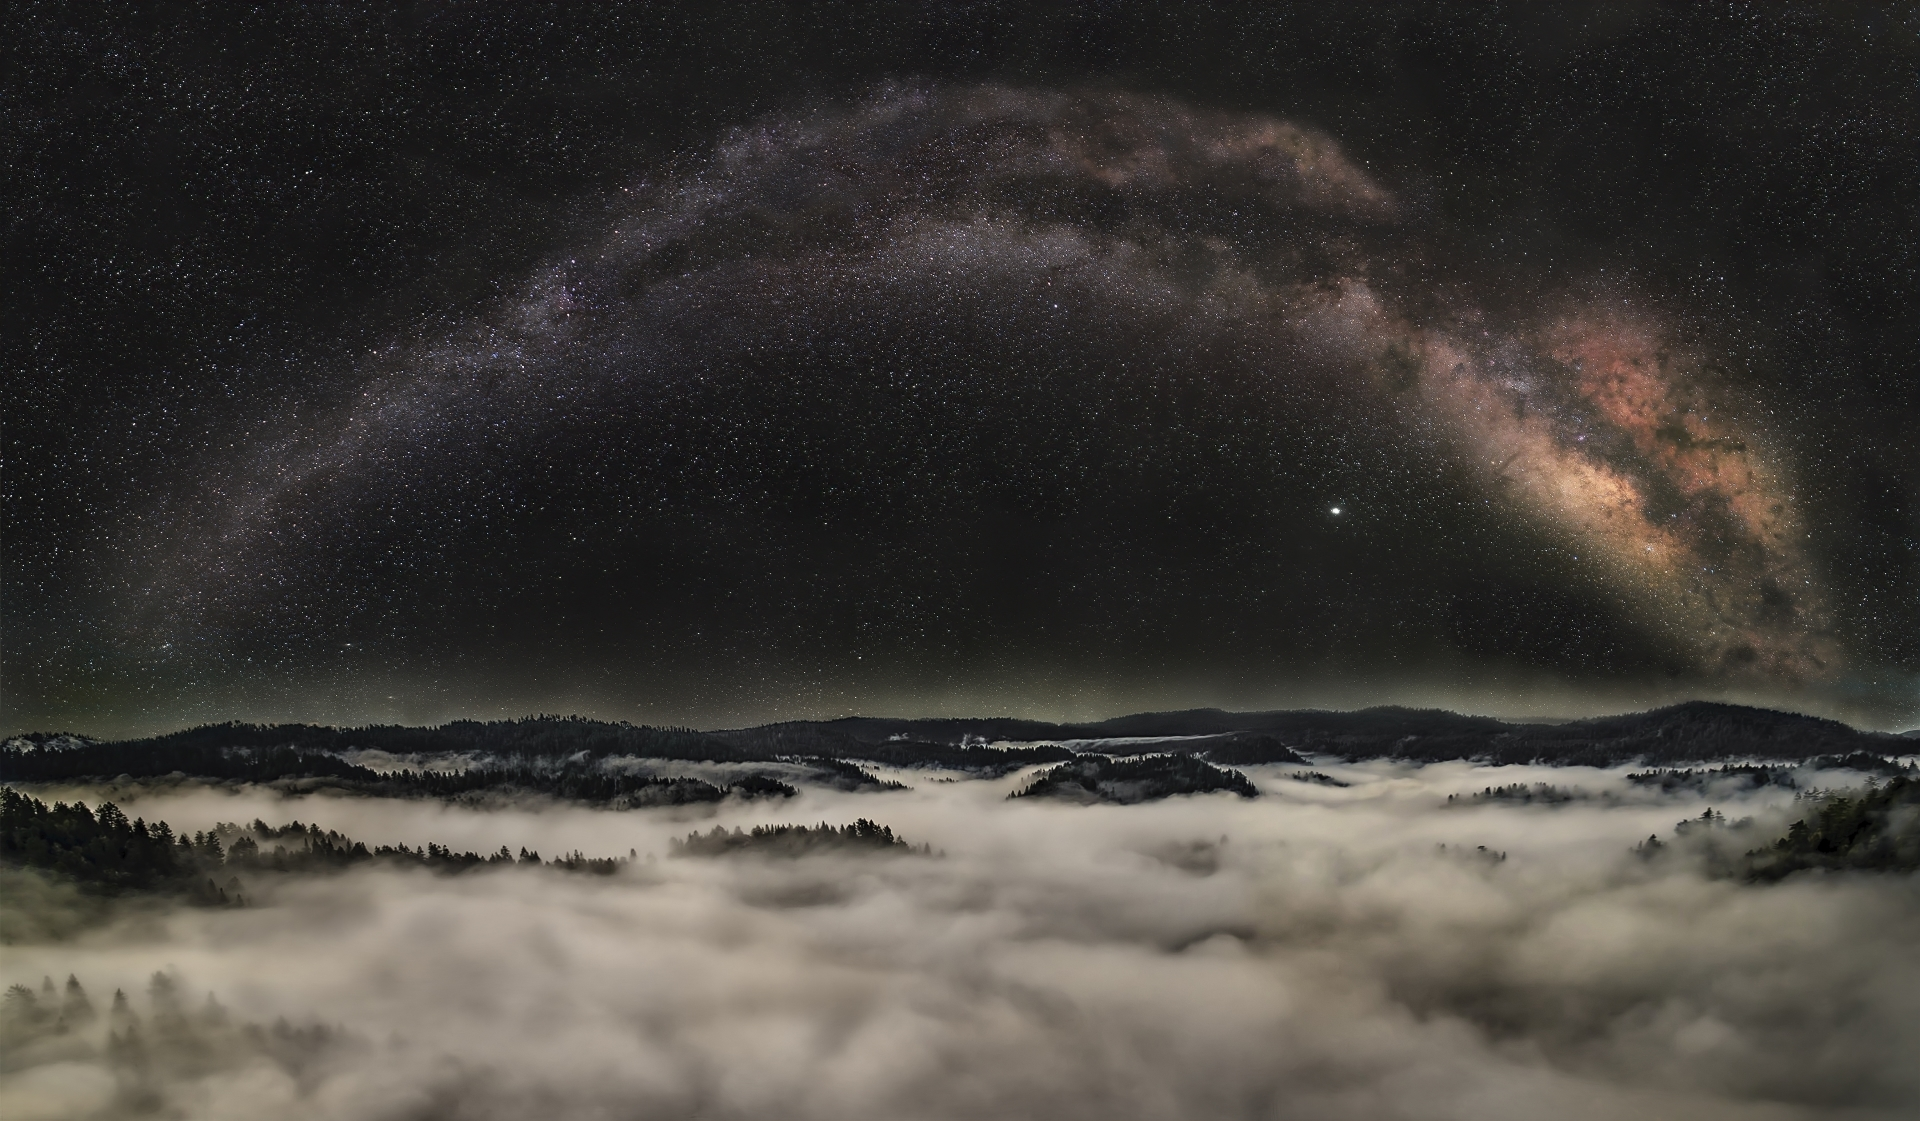 Milky-way-above-the-clouds.-PI-1-Place-by-Steve-Gibbs-SR